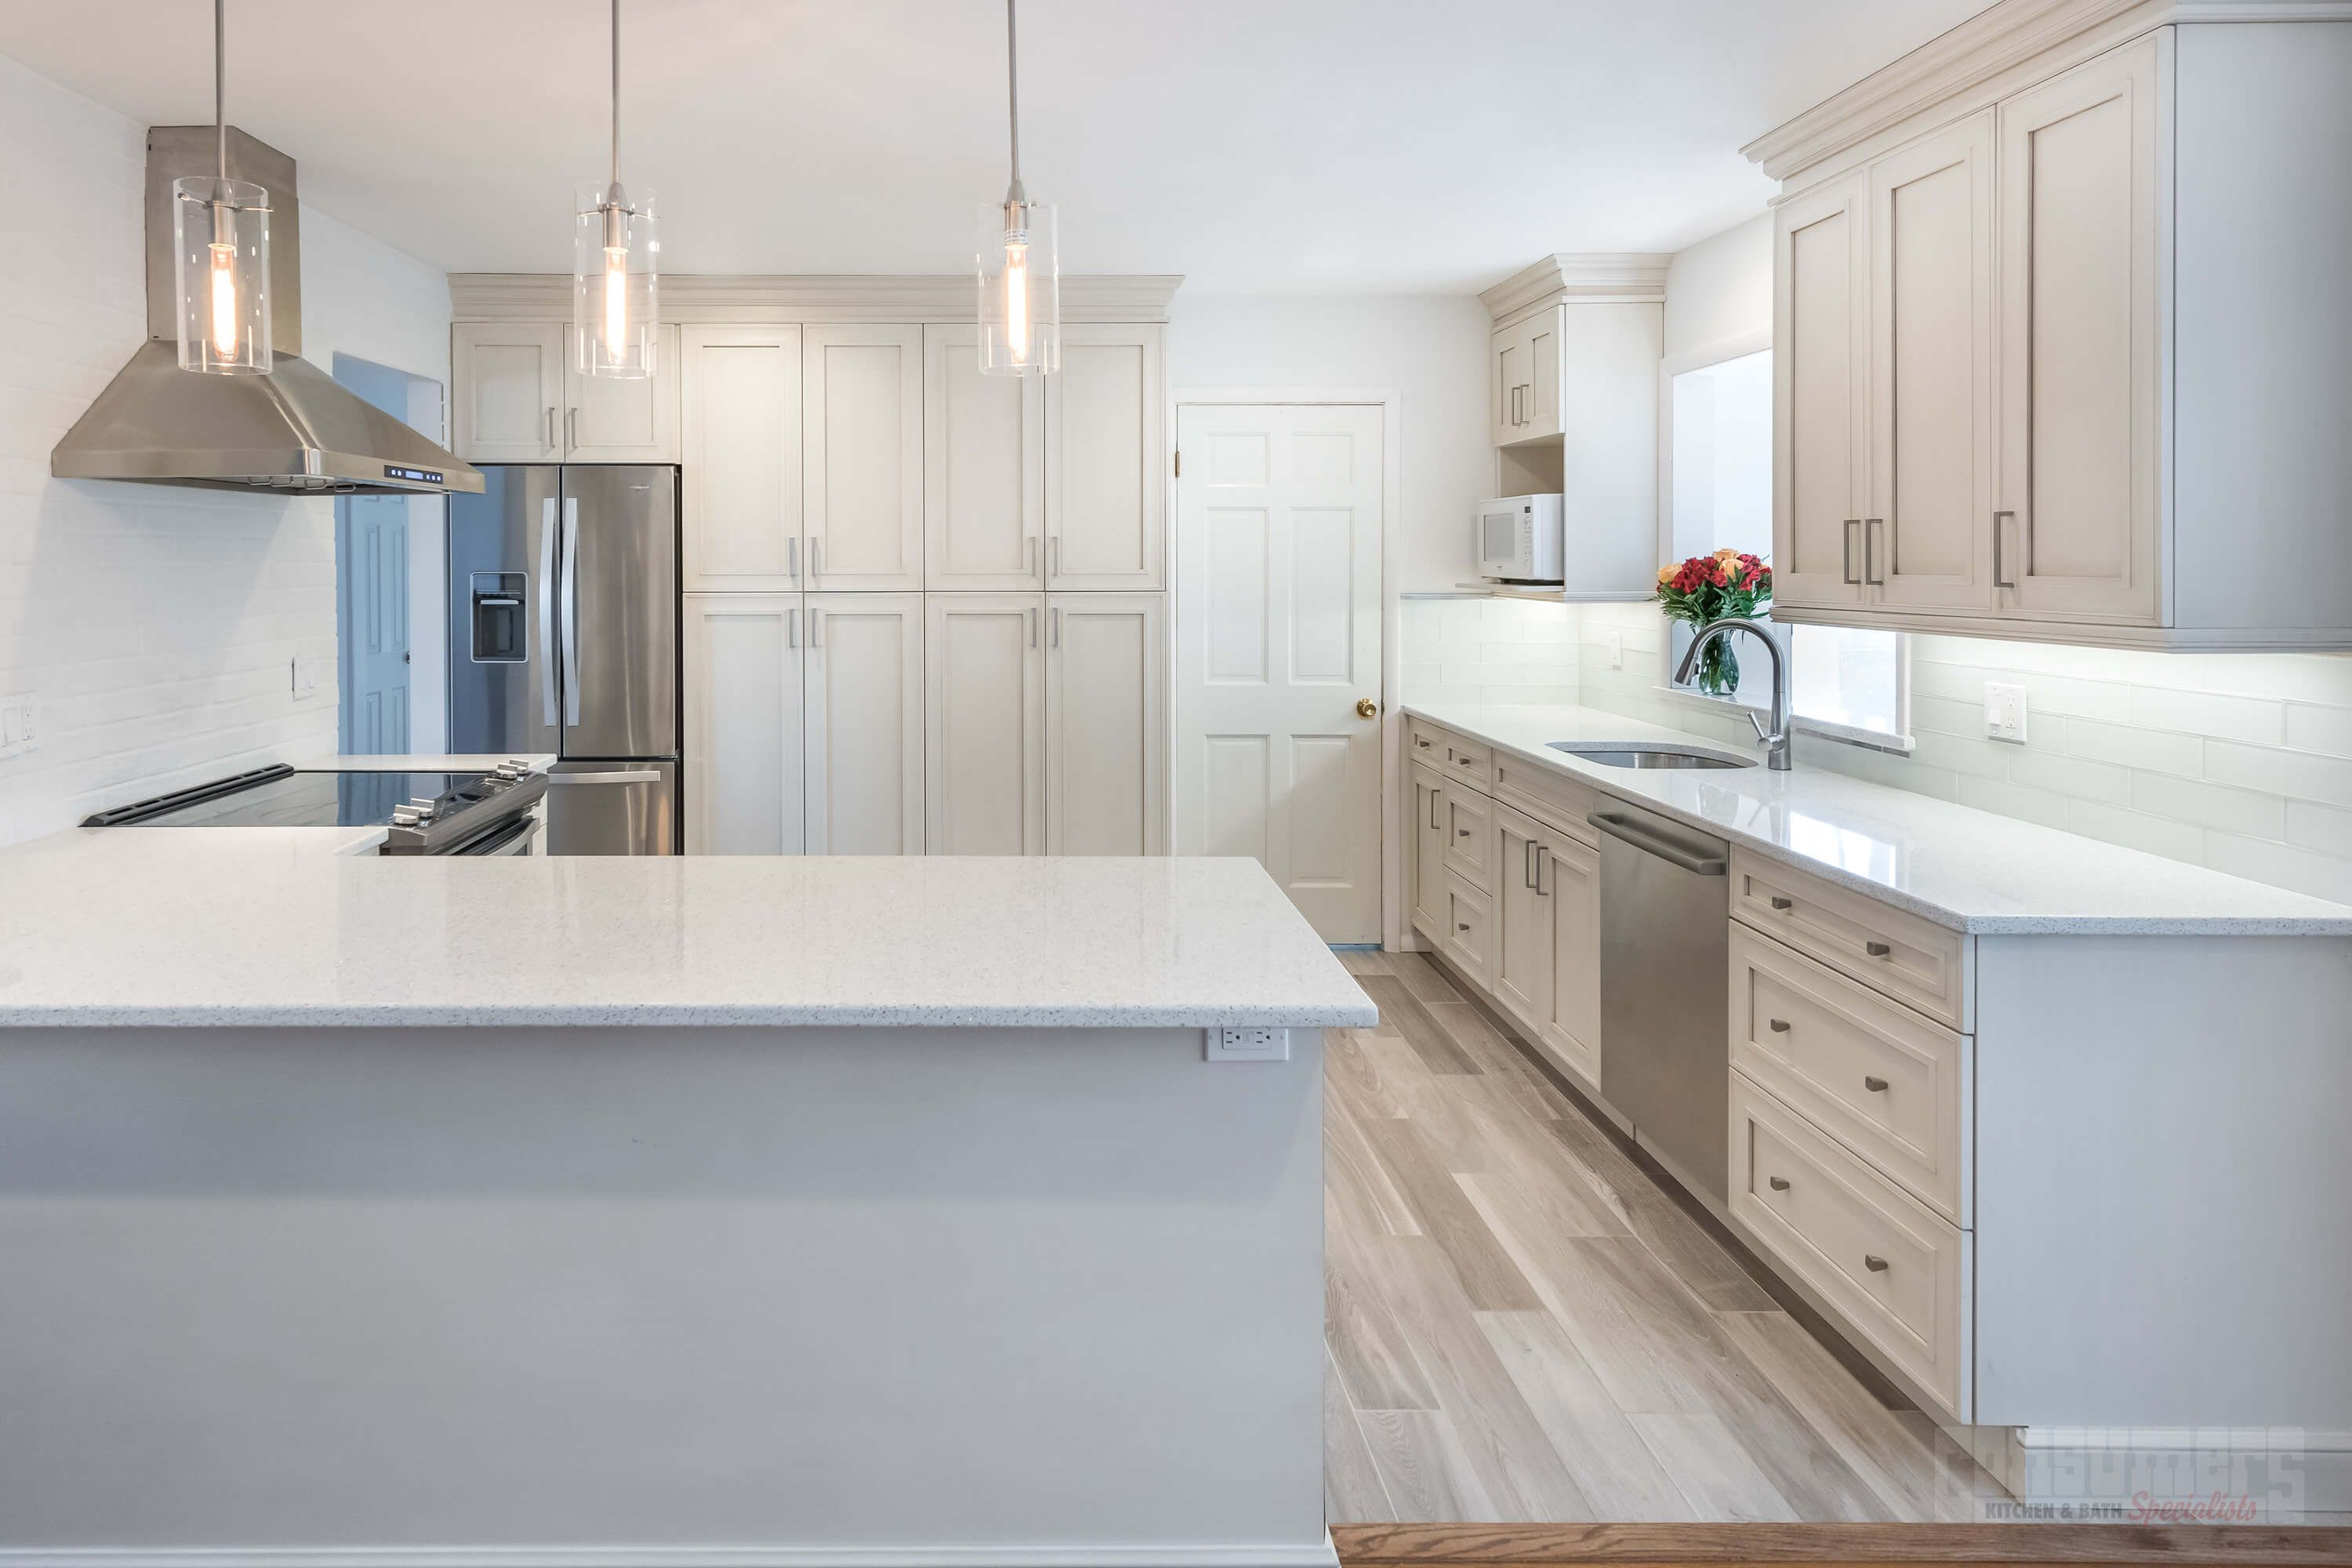 Pin By Kendra Stringham On Commack Crystal Lake Free Kitchen Design Kitchen Cabinets Direct Online Kitchen Cabinets